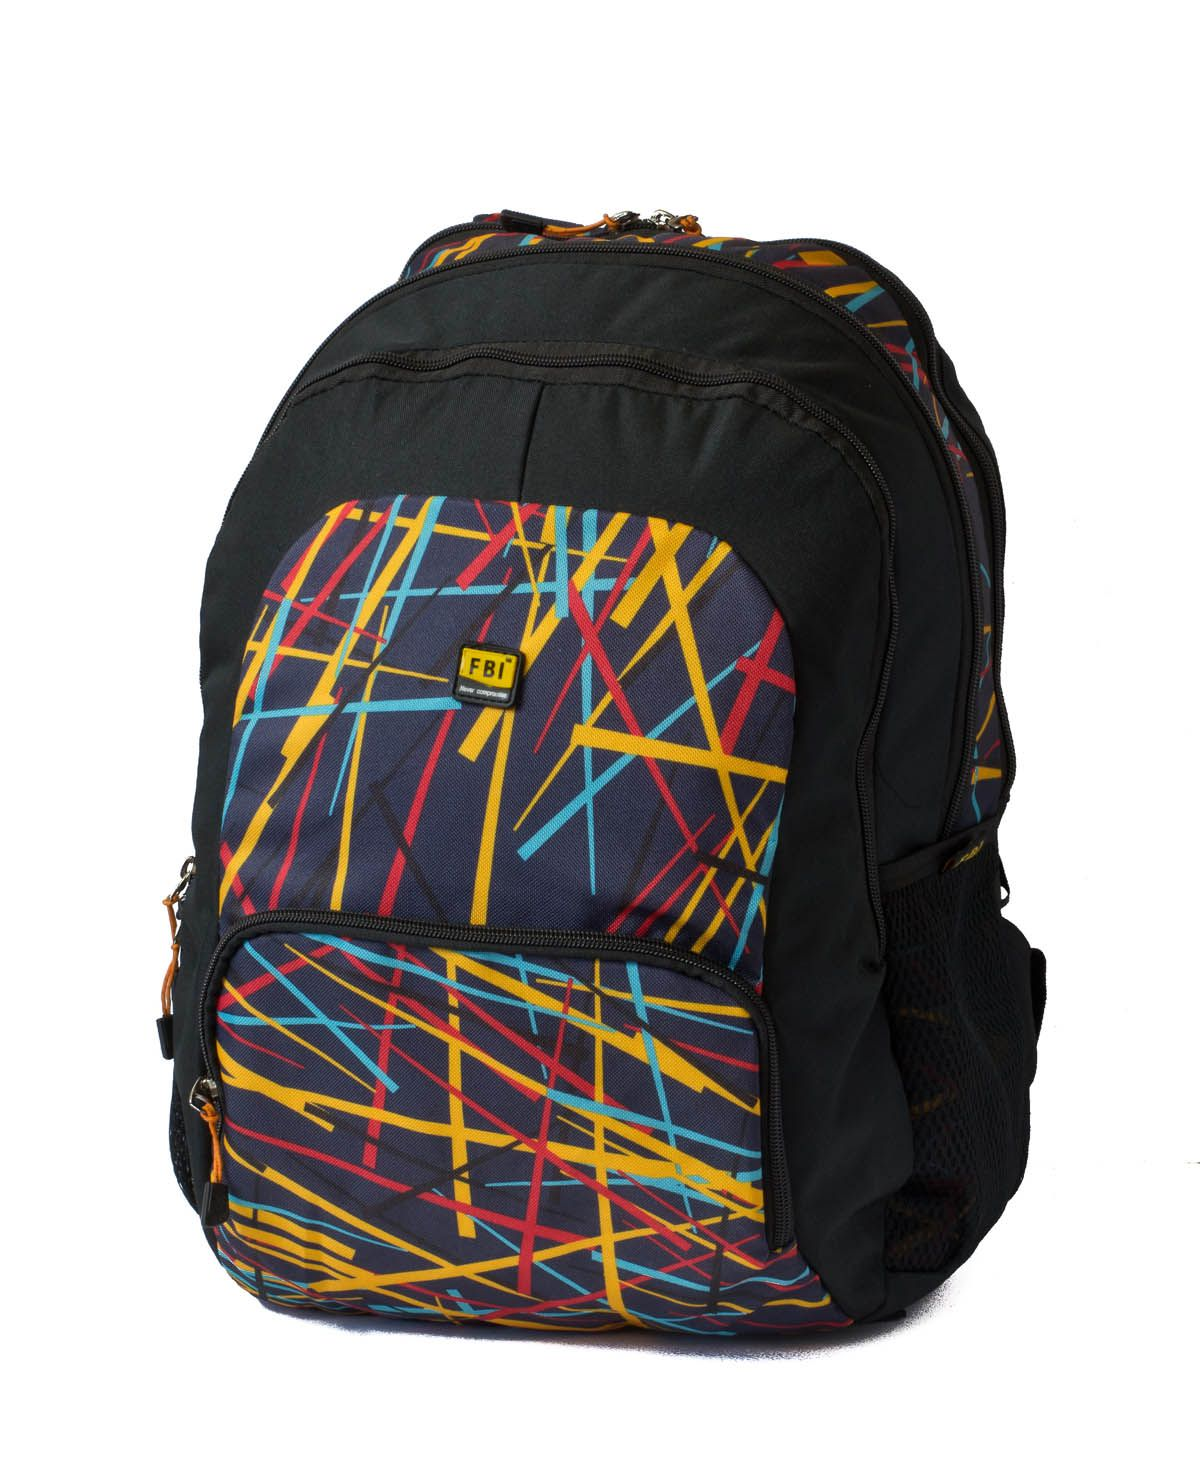 FBI Multi Color 20 Polyester Casual Backpack